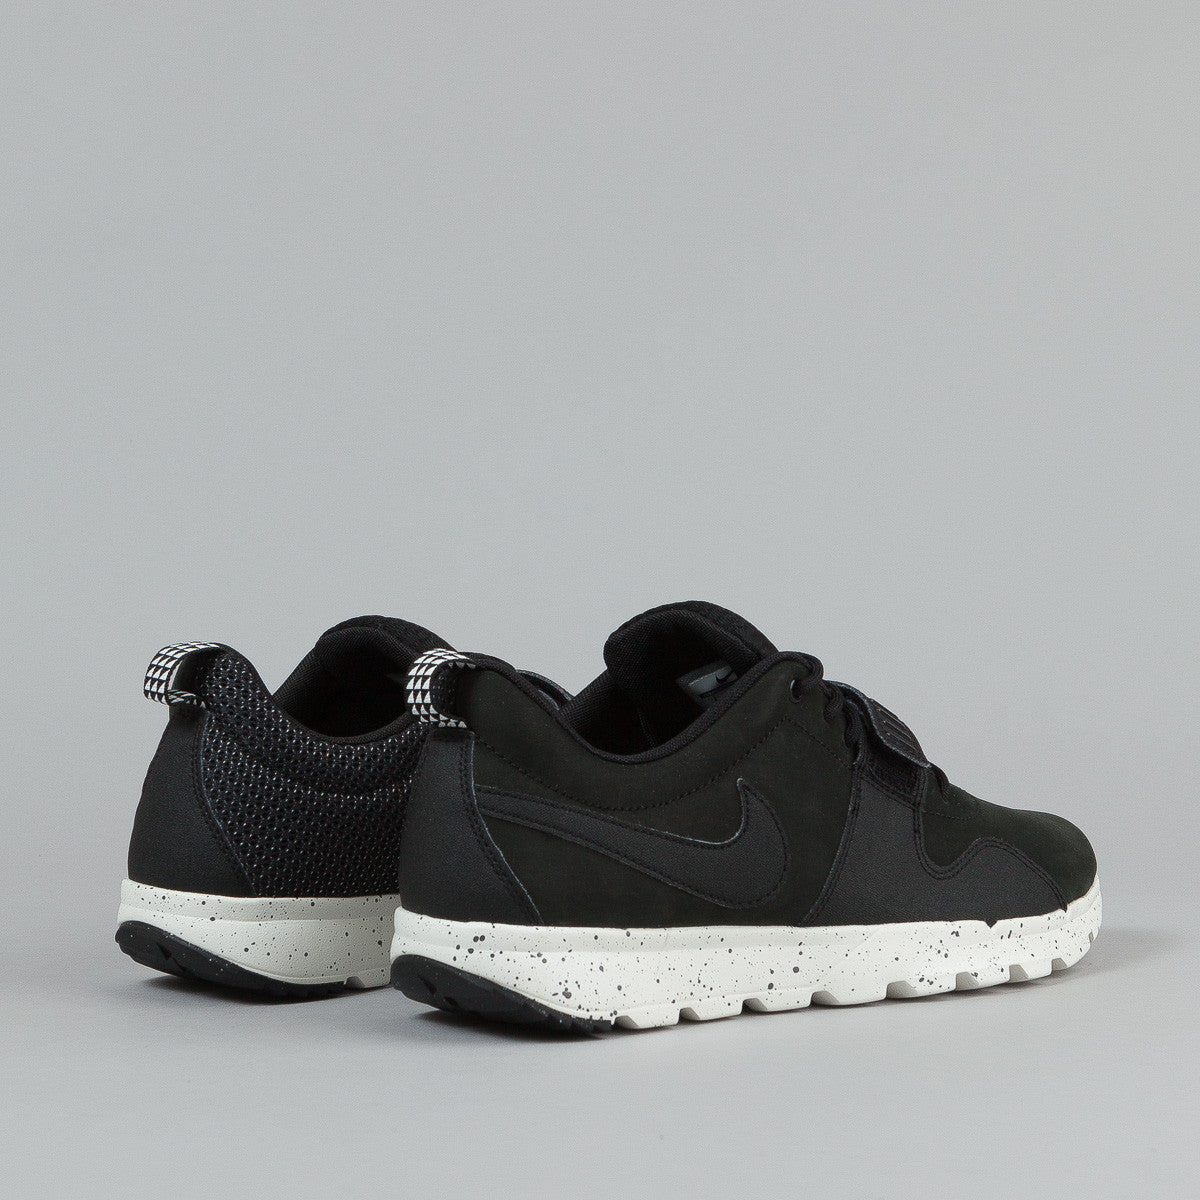 Nike SB Trainerendor Shoes - Black / Black - Black